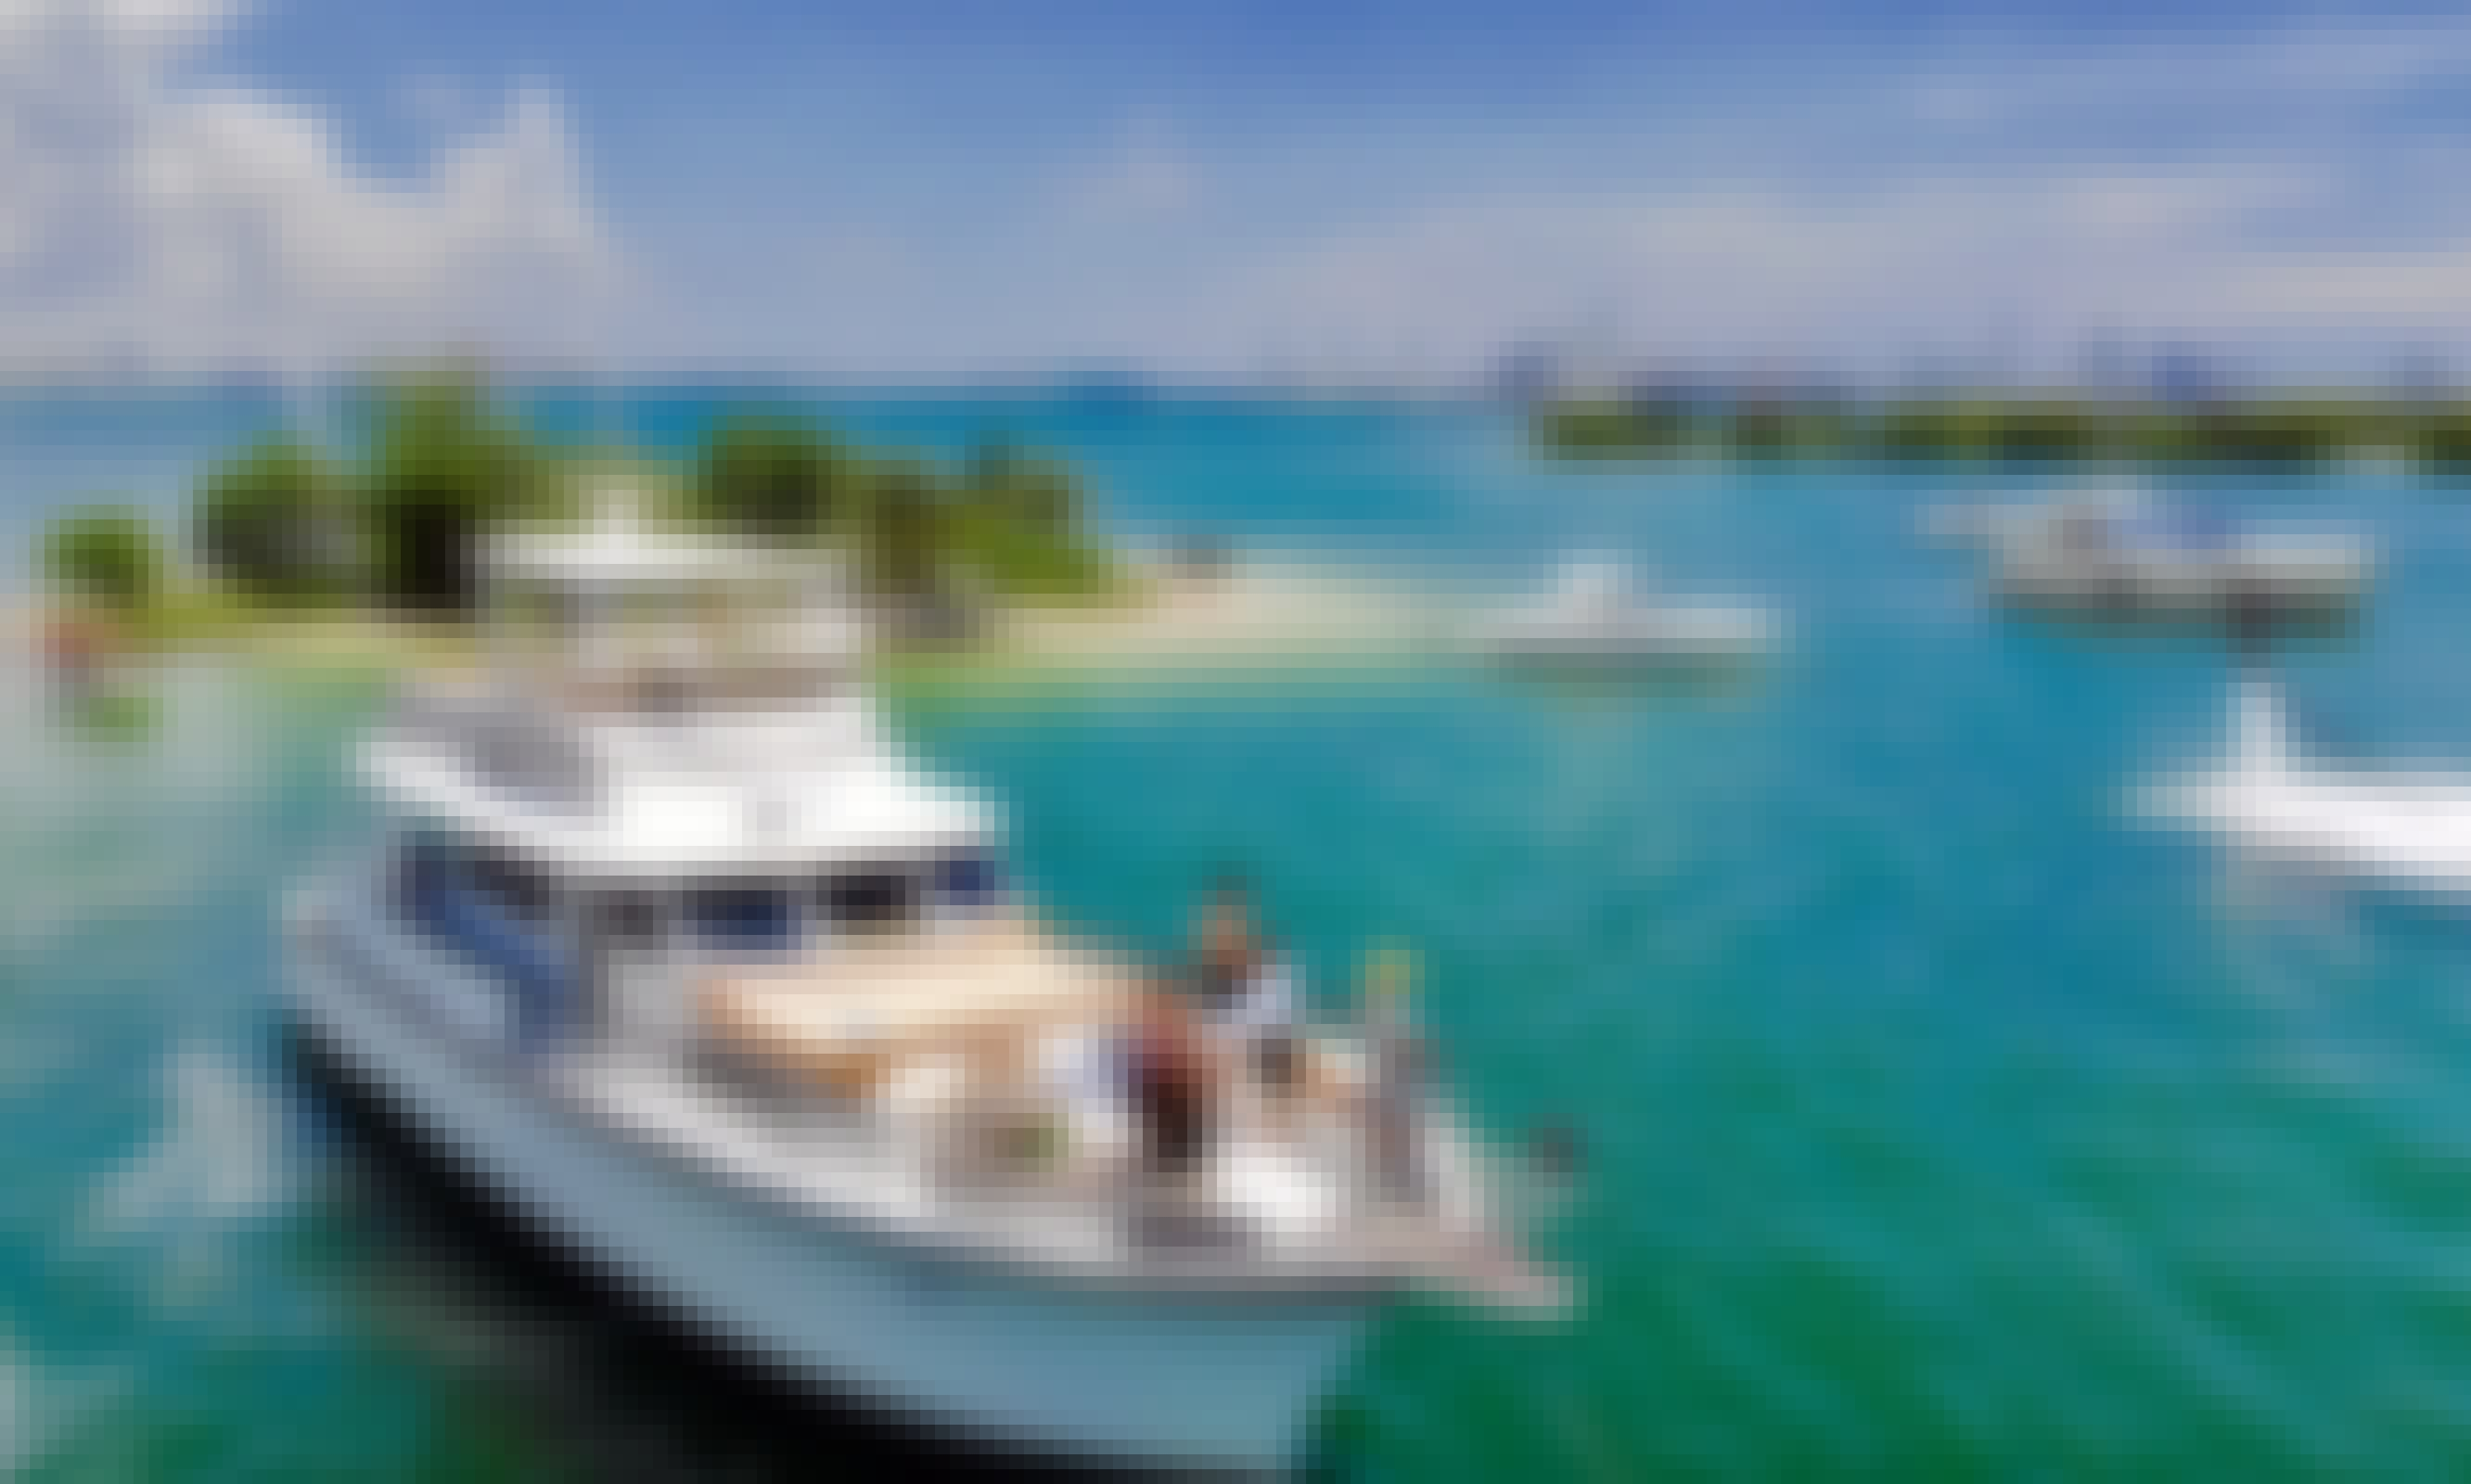 Columbus Day Regatta Special 60' Motor Yacht with Hot Tub in Miami!